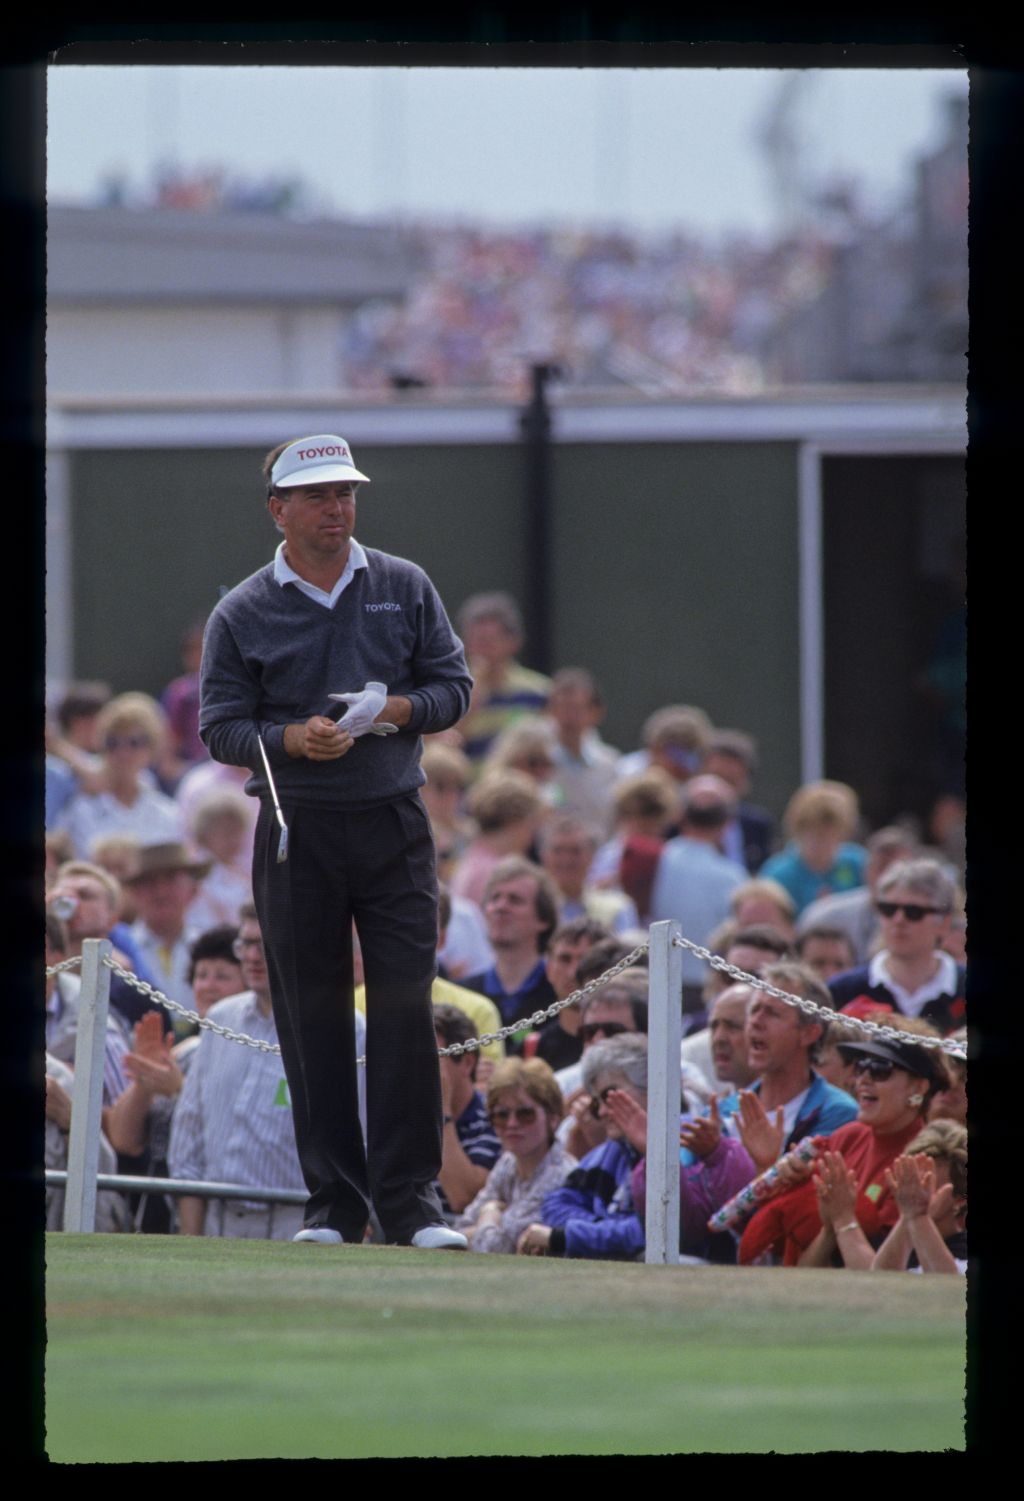 Mark O'Meara looking determined on the tee during the 1991 Open Championship